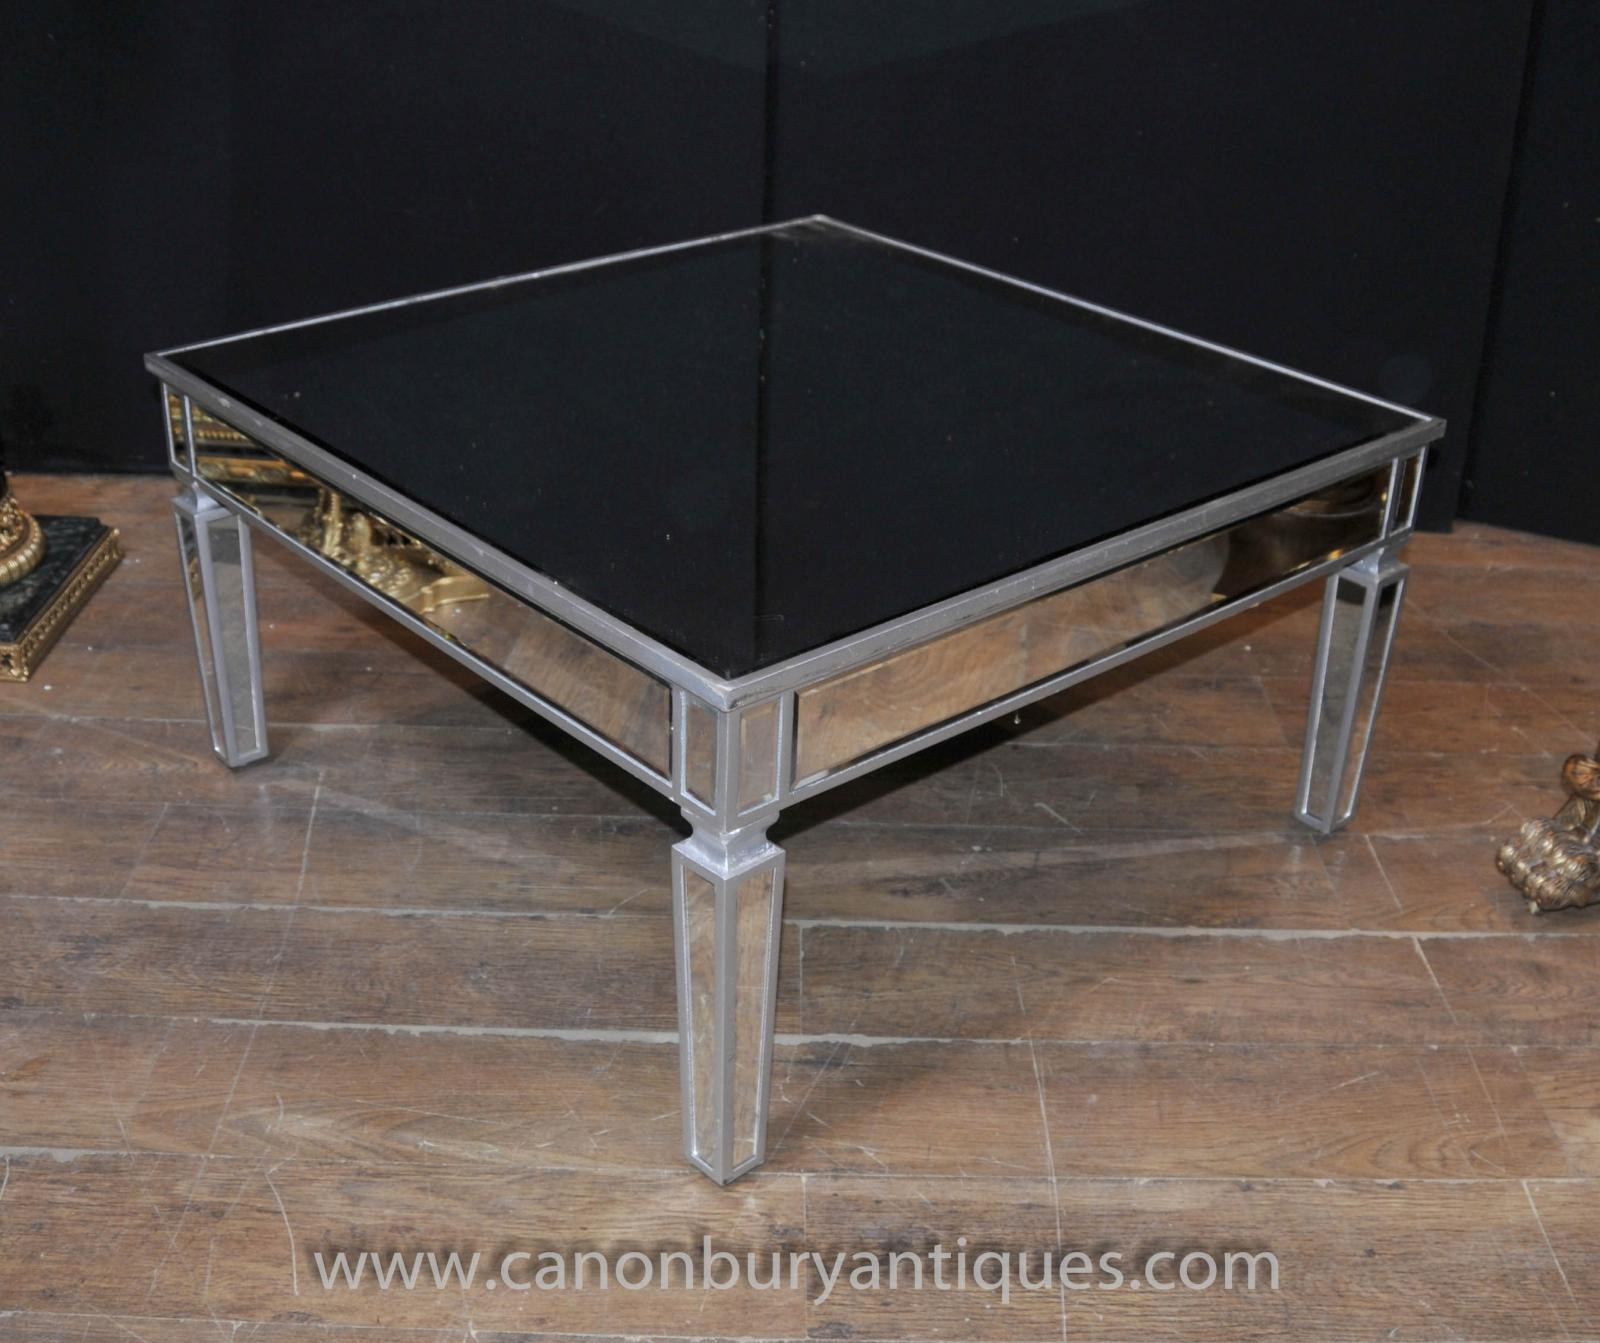 Empire Mirrored Coffee Table: Art Deco Mirrored Coffee Table Glass Cocktail Tables